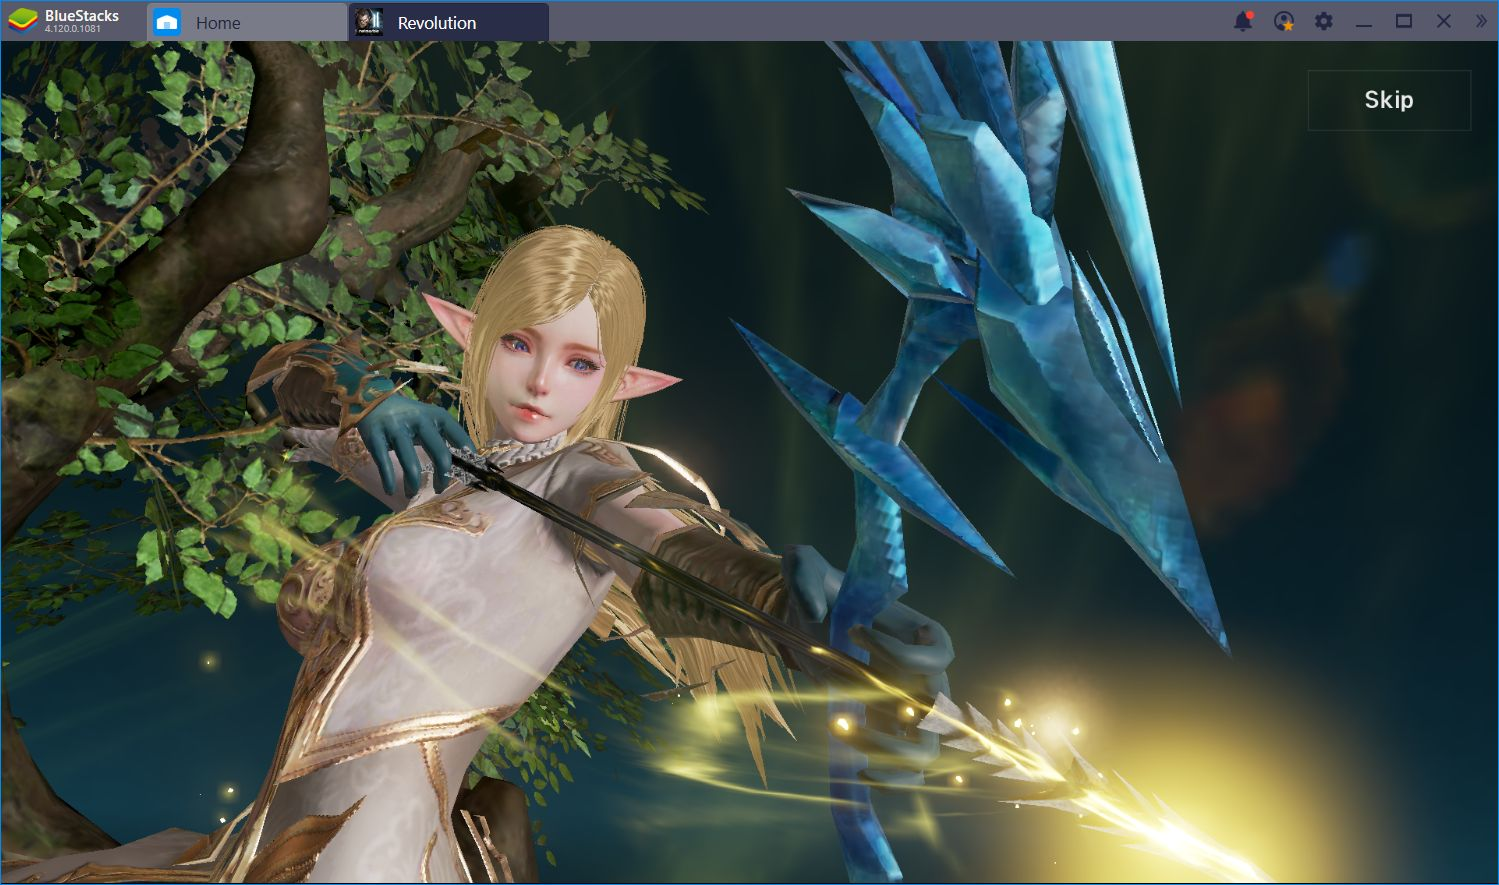 Kamael, Dual Class, and More in Lineage 2 Revolution's Newest Update